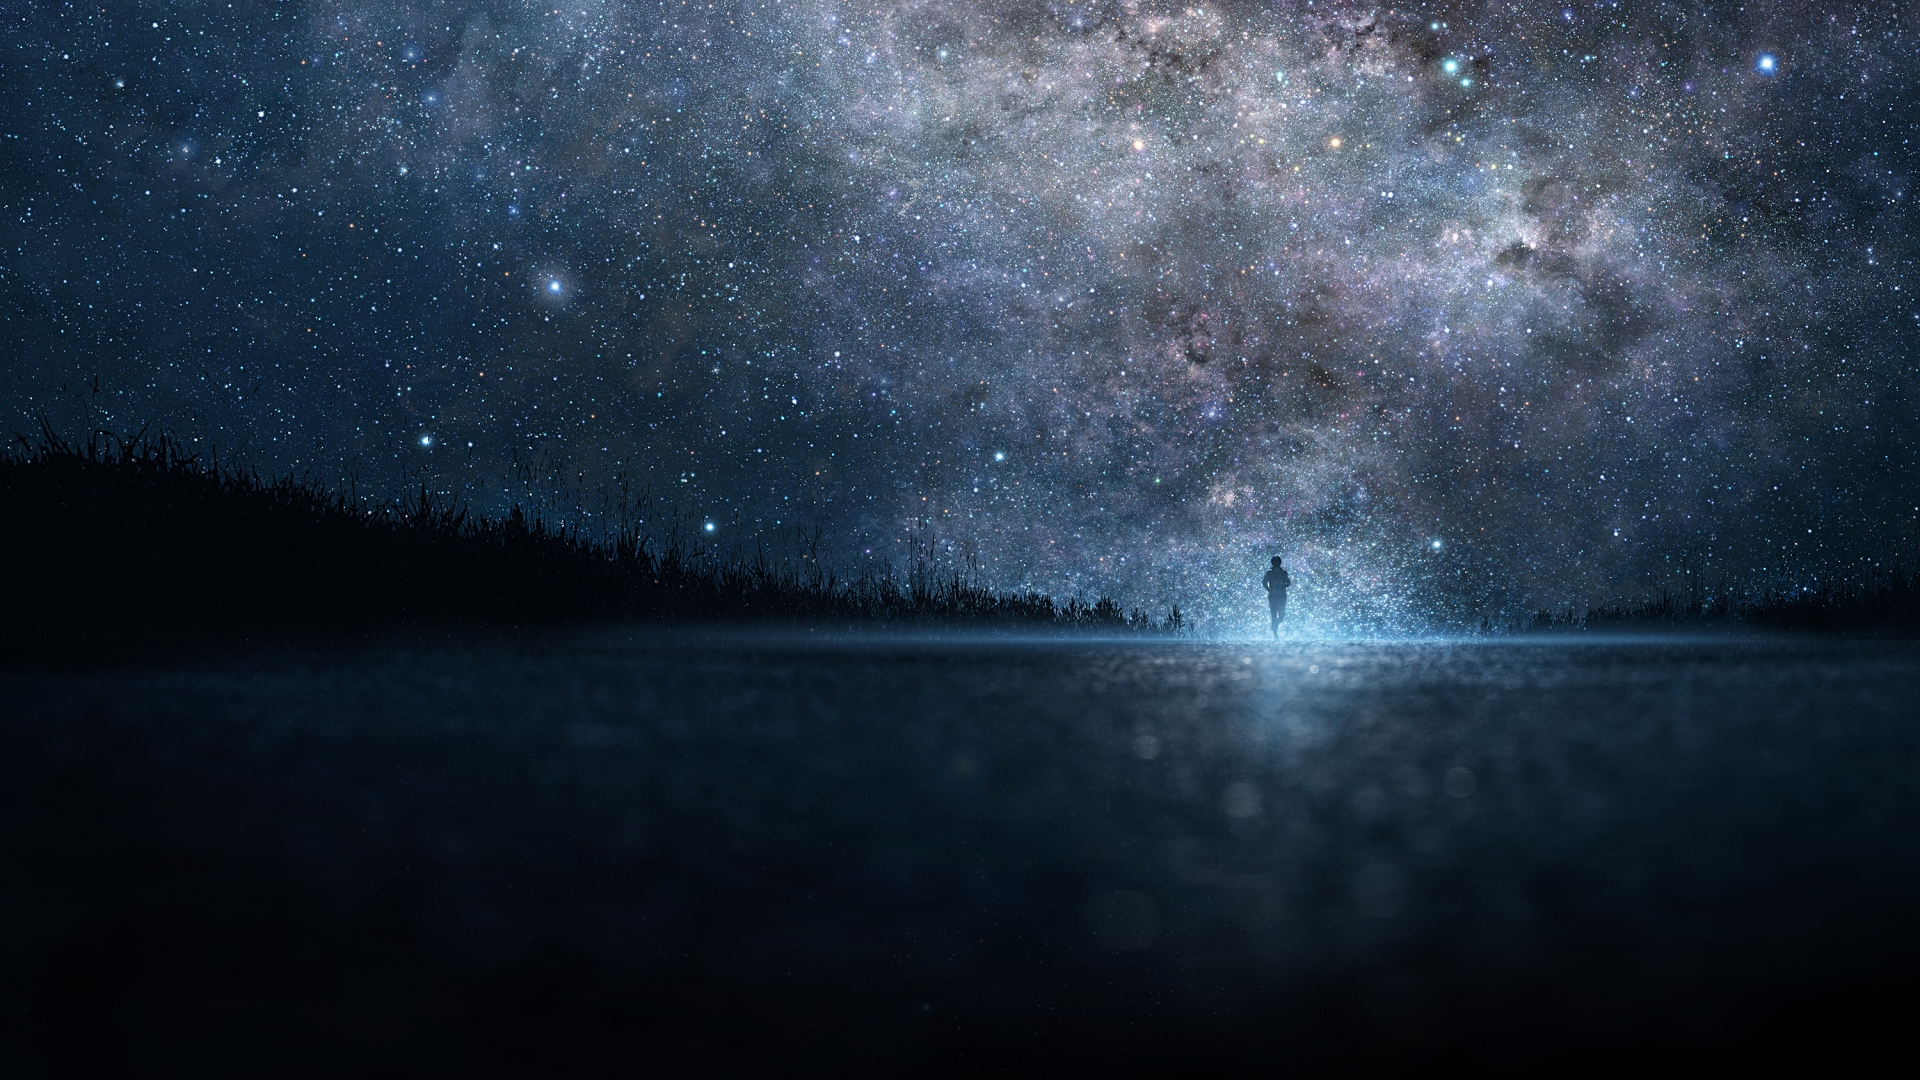 HD Wallpapers Of Stars